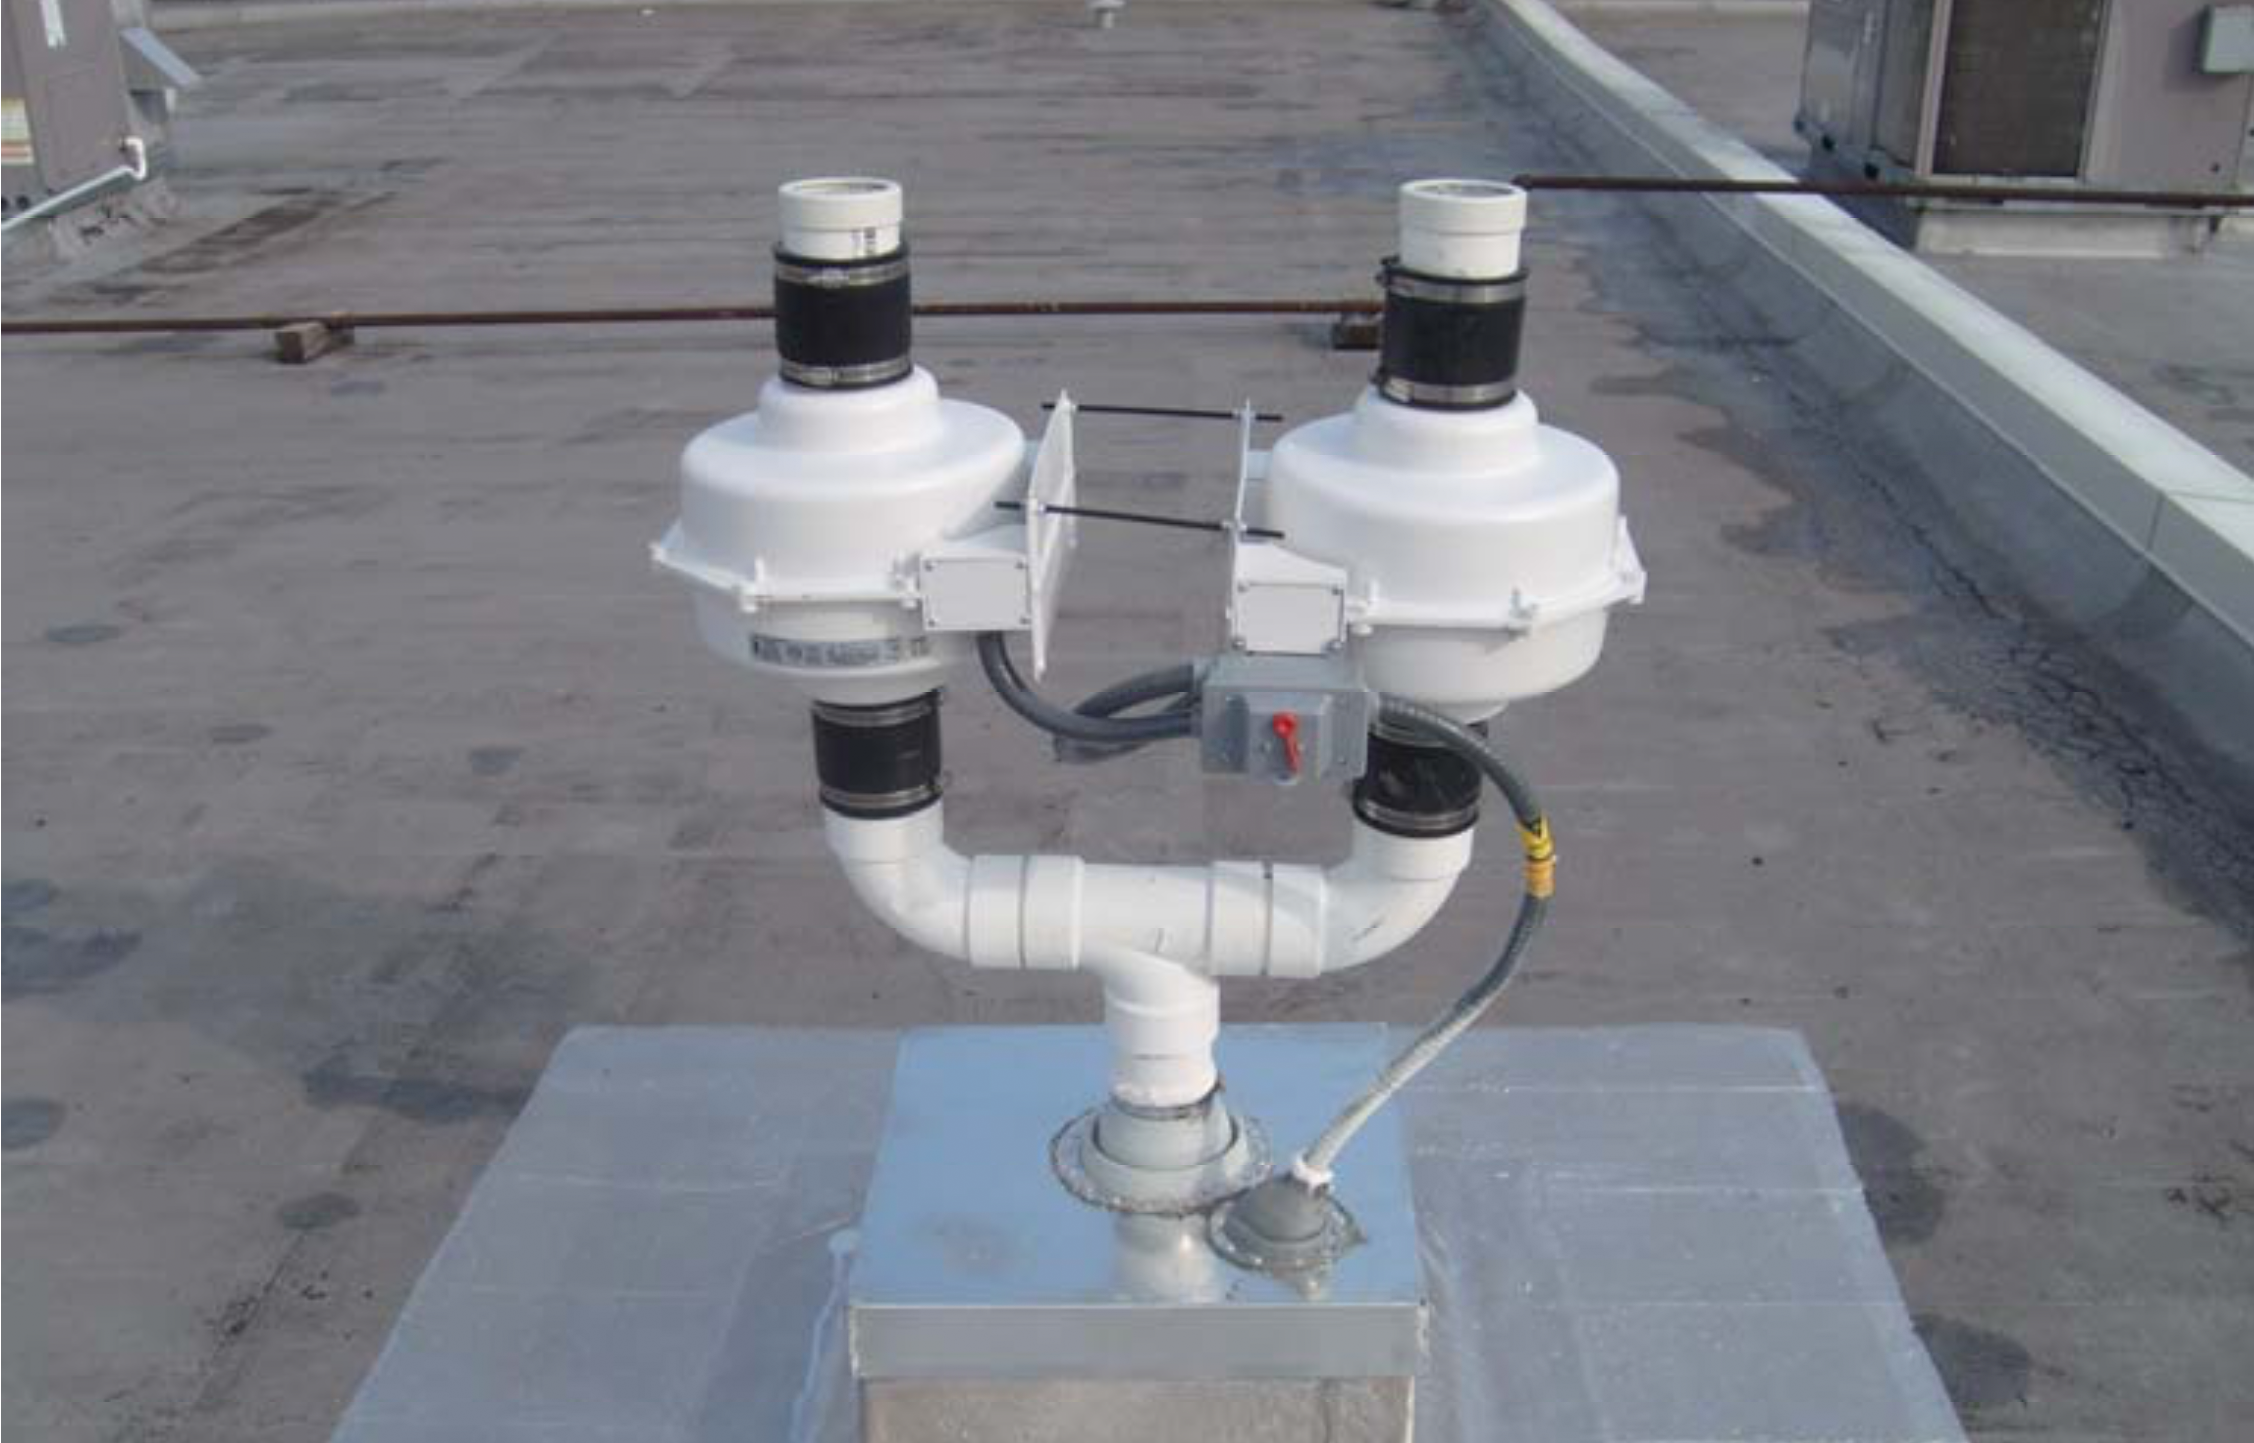 Dual-fan sub-slab vapor mitigation system installed on building roof at a commercial use building